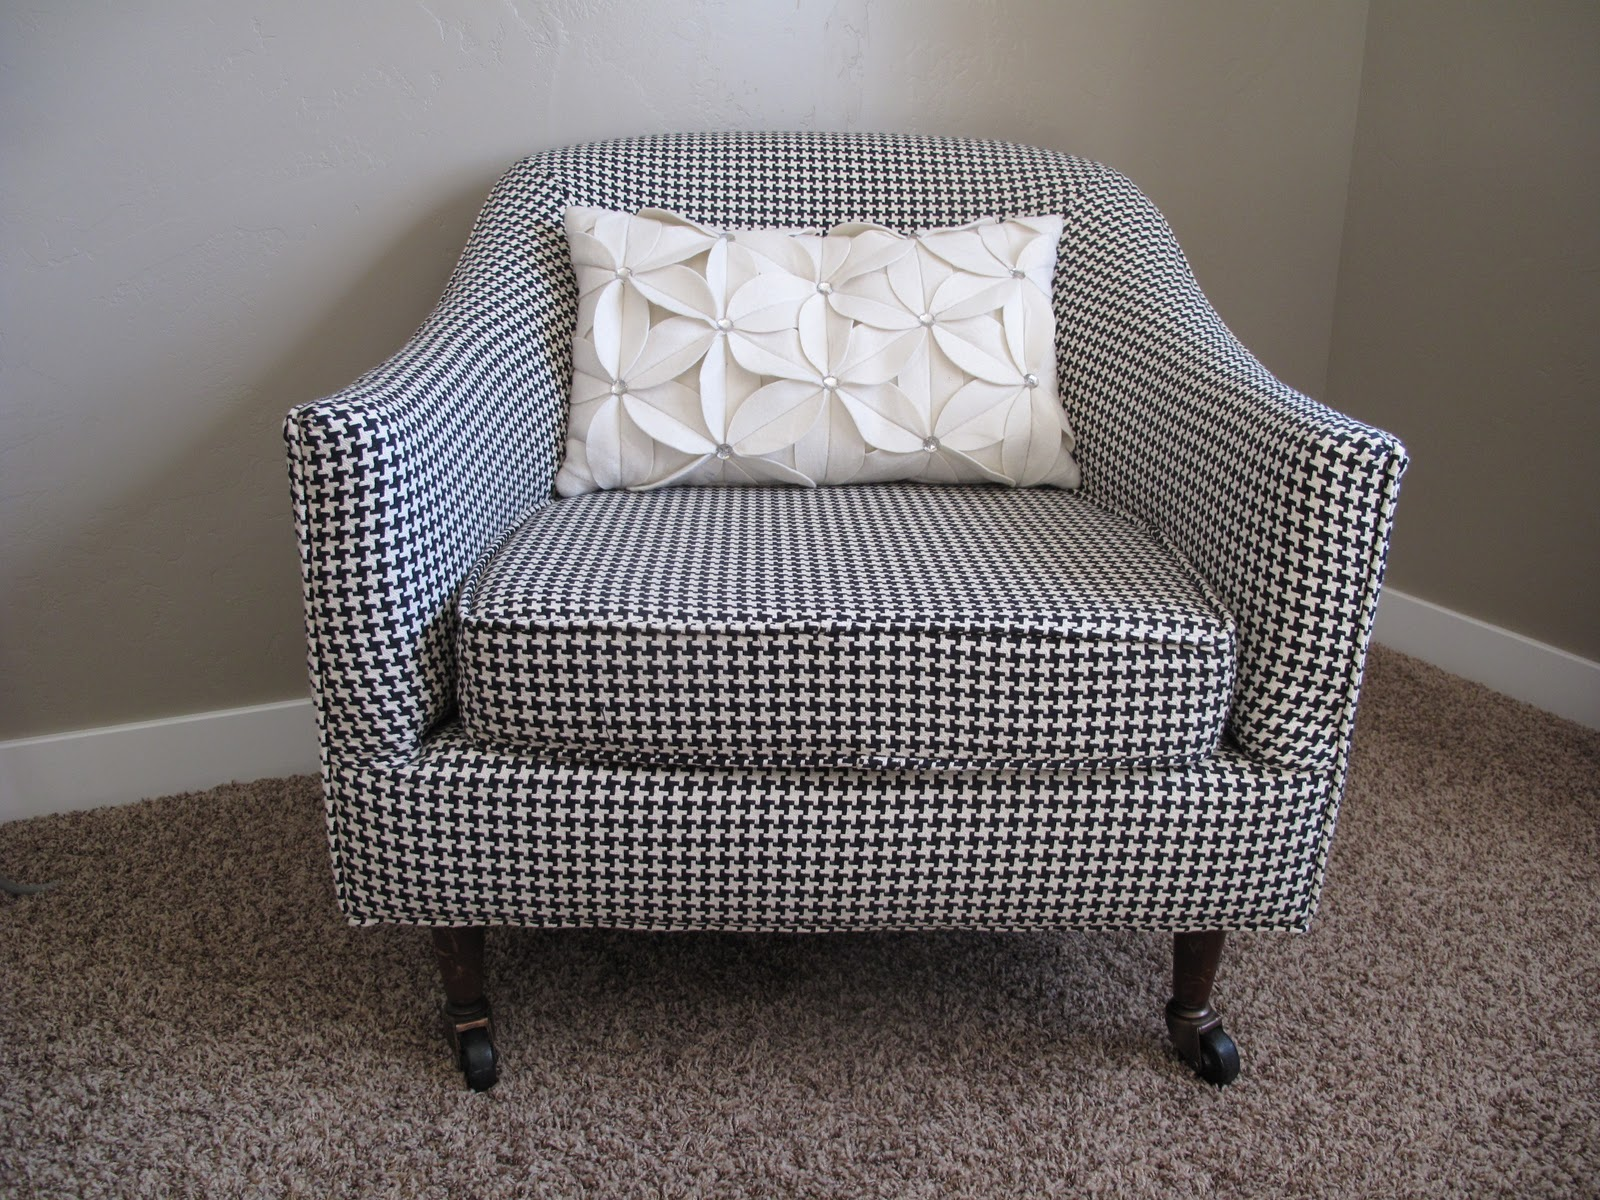 houndstooth sofa fabric replacement air mattress for rv bed 1000 43 images about on pinterest